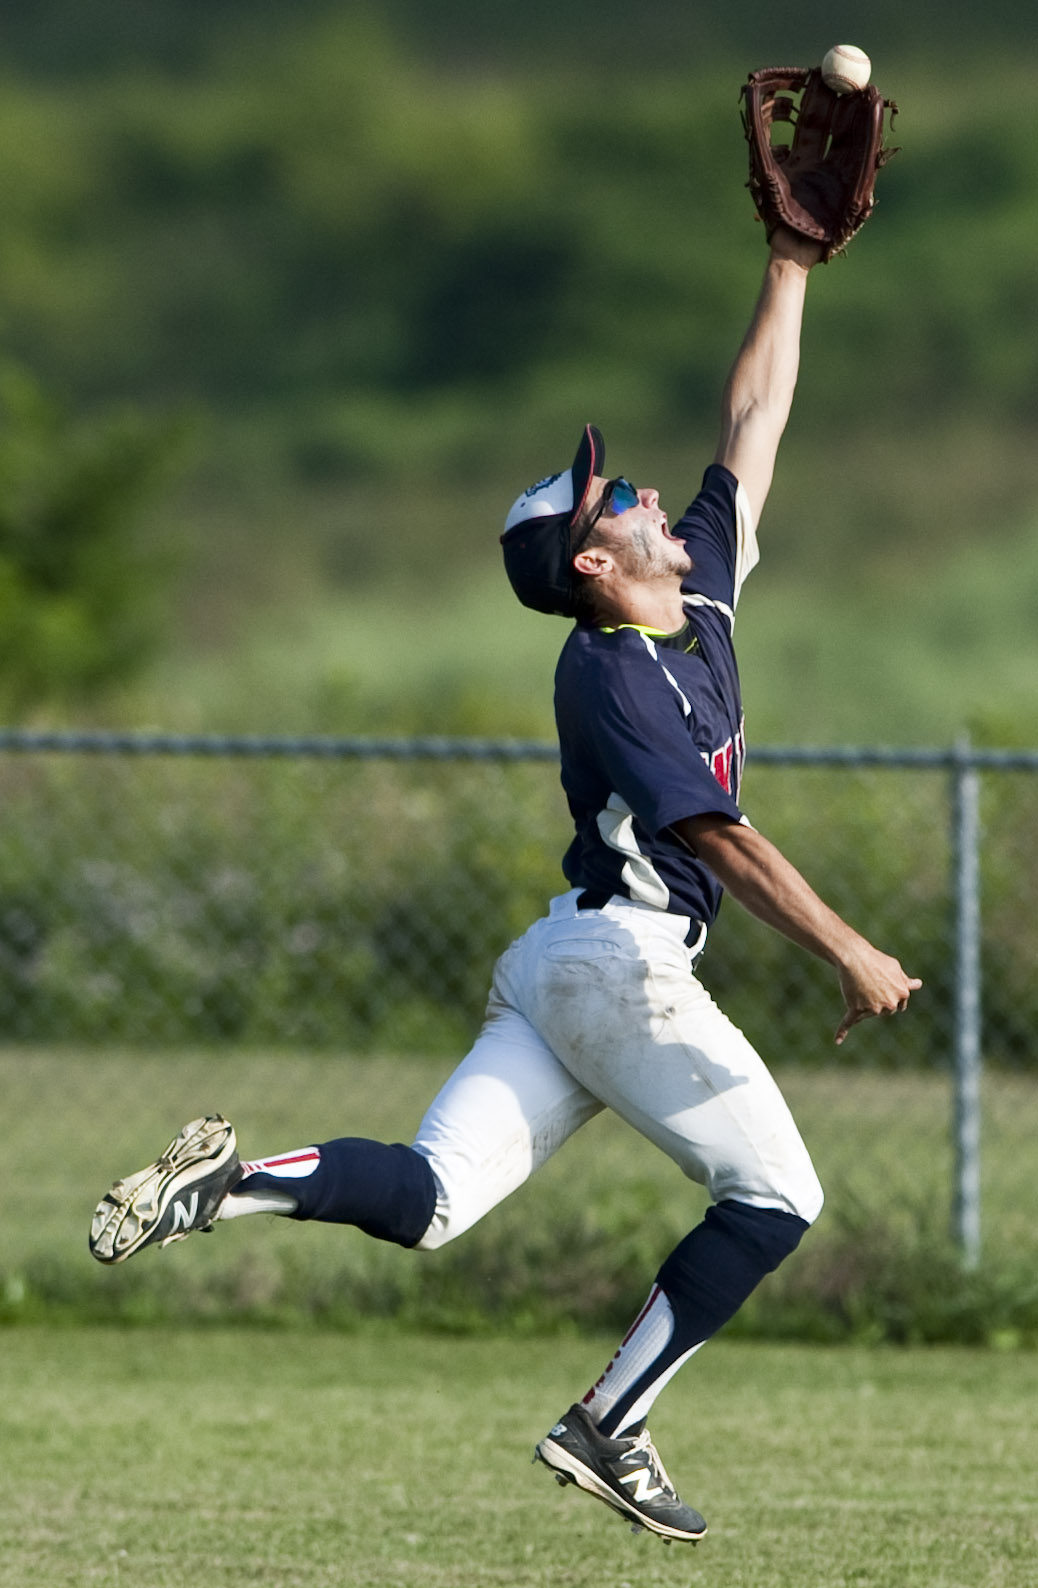 Unity's Vince Guerrieri leaps for the ball during a District 31 American Legion baseball playoff game against Murrysville on Thursday, July 7, 2016. Murrysville won 9-3.